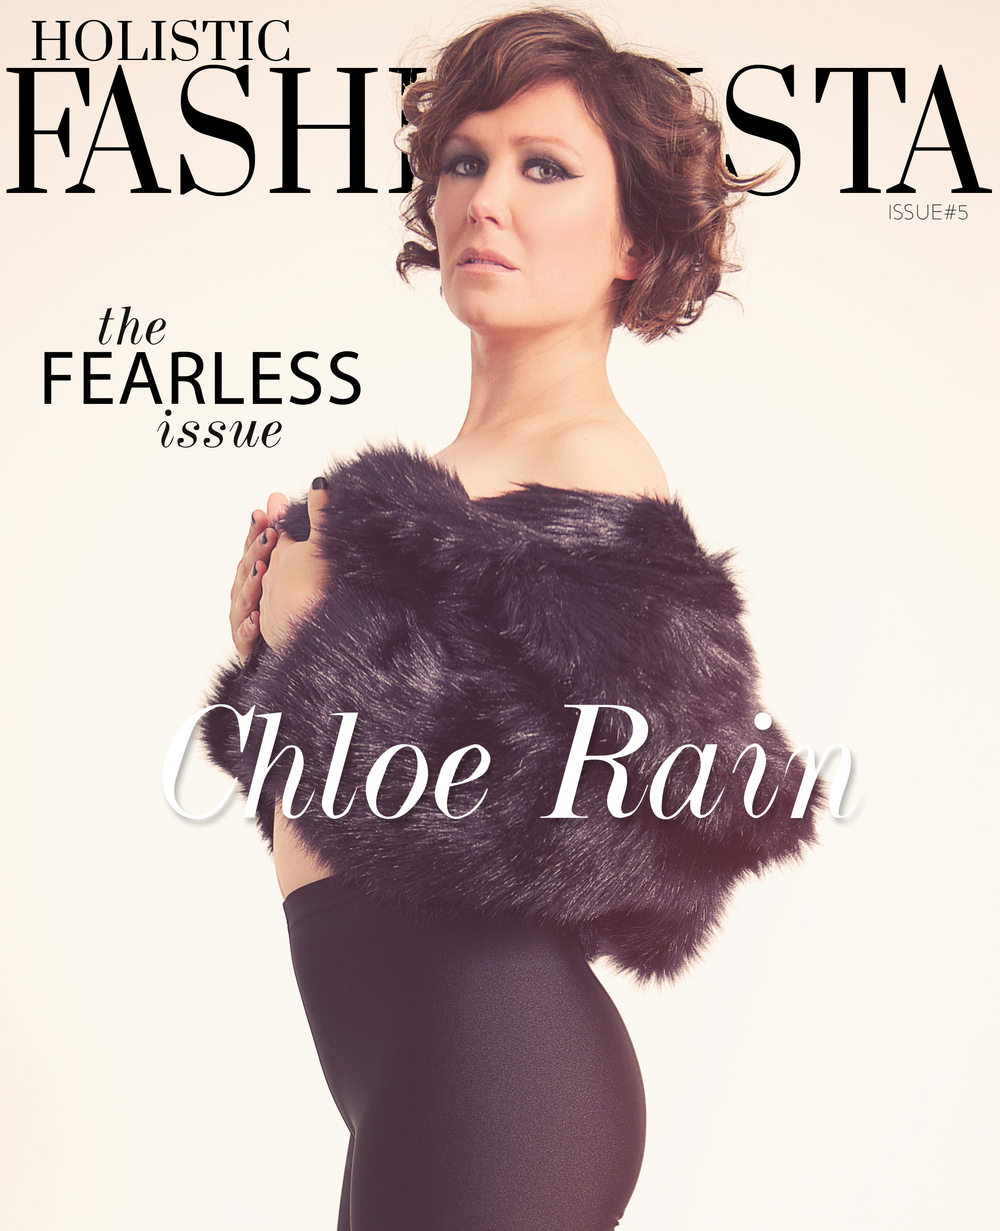 Holistic Fashionista Magazine Issue#5